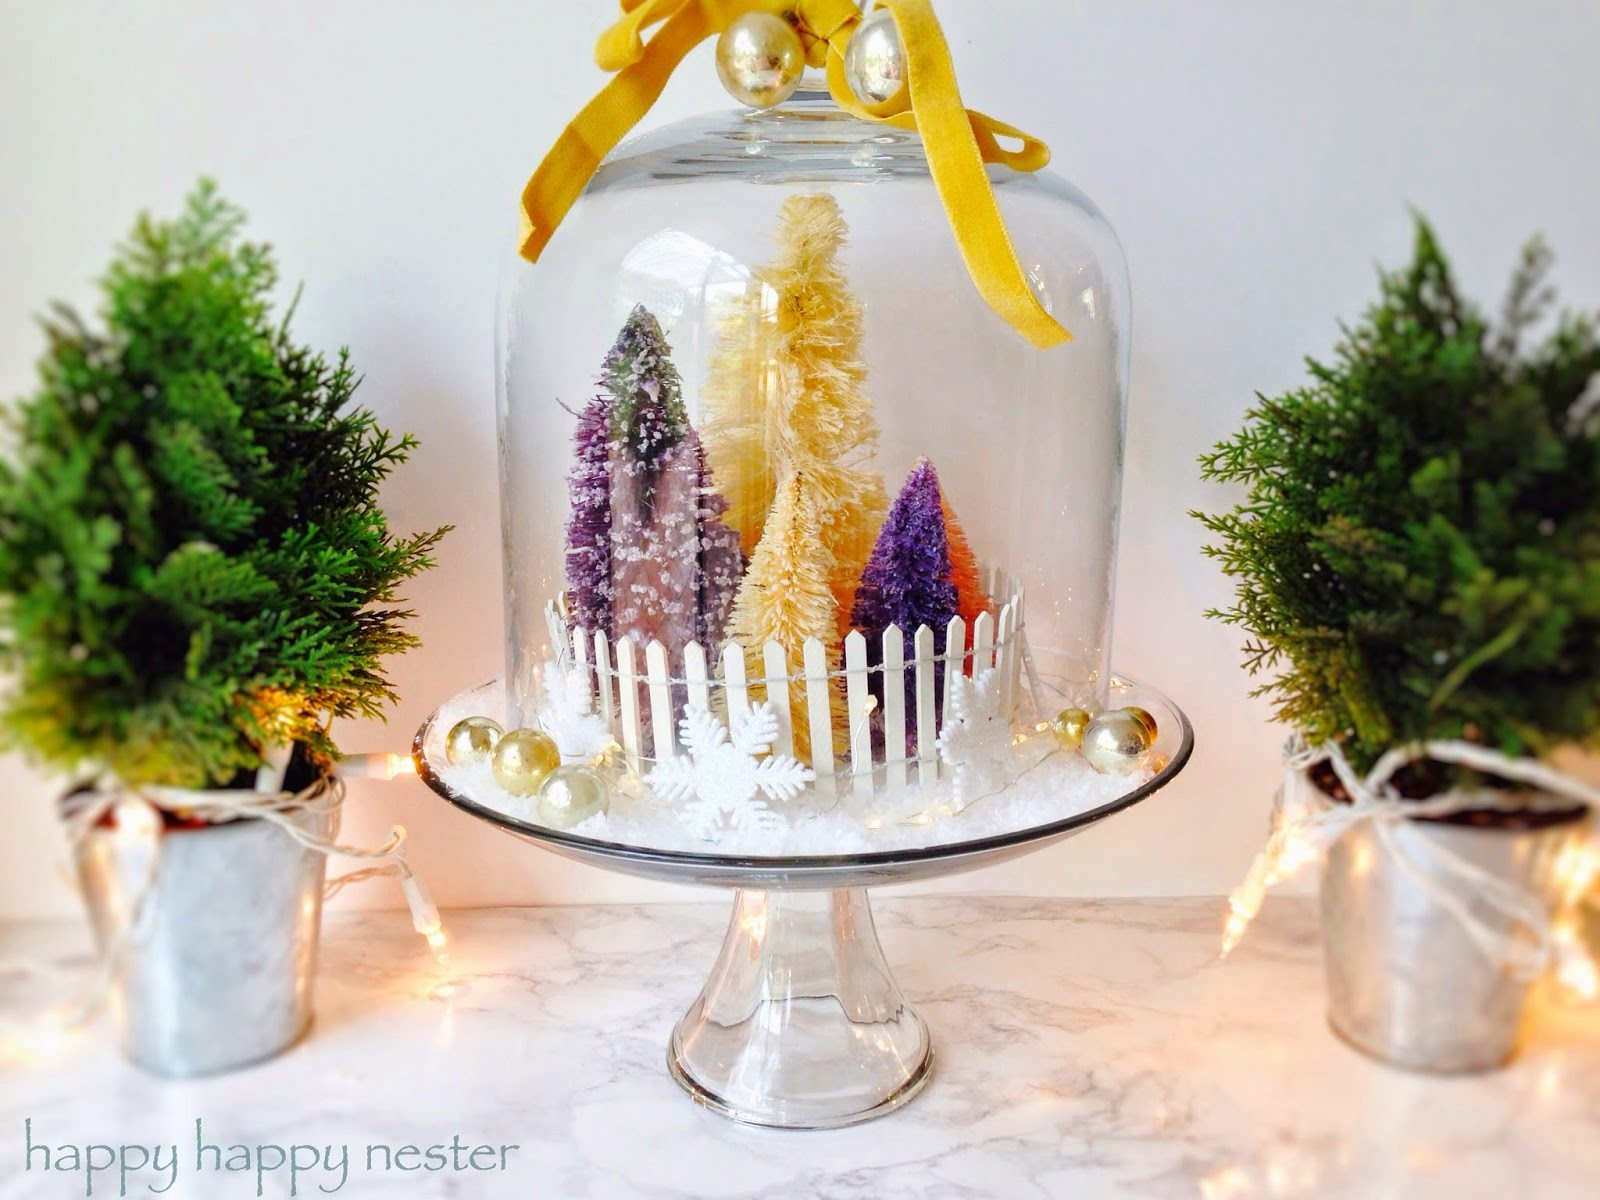 How to Make Bottle Brush Holiday Trees